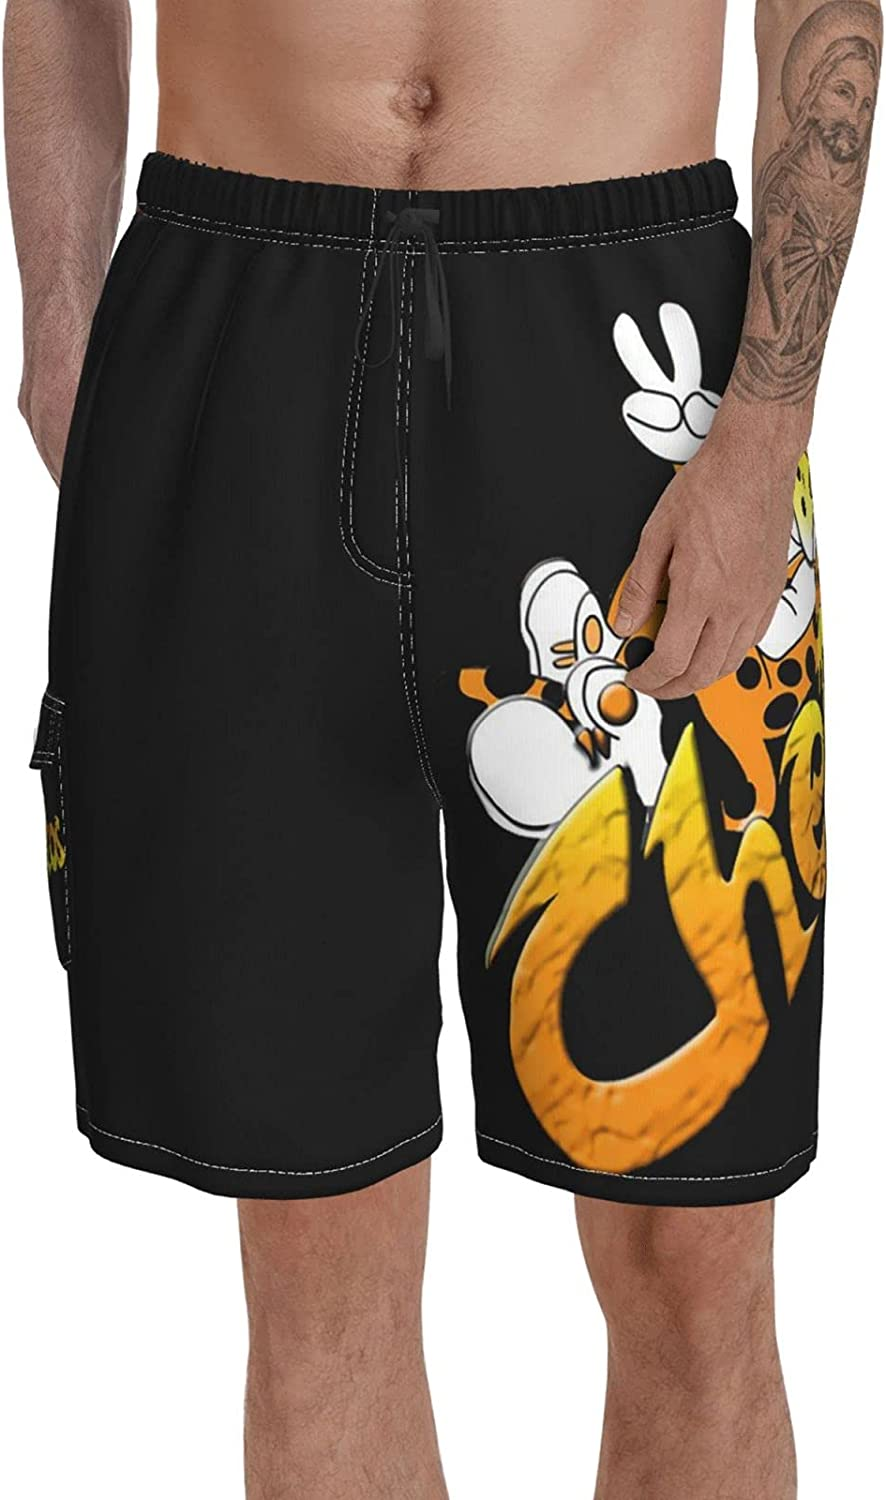 Cheetos Mens Swimming Trunks Swim Trunks with Mesh Lining Summer Beach Shorts Board Shorts Surf Shorts Quick Dry Pants